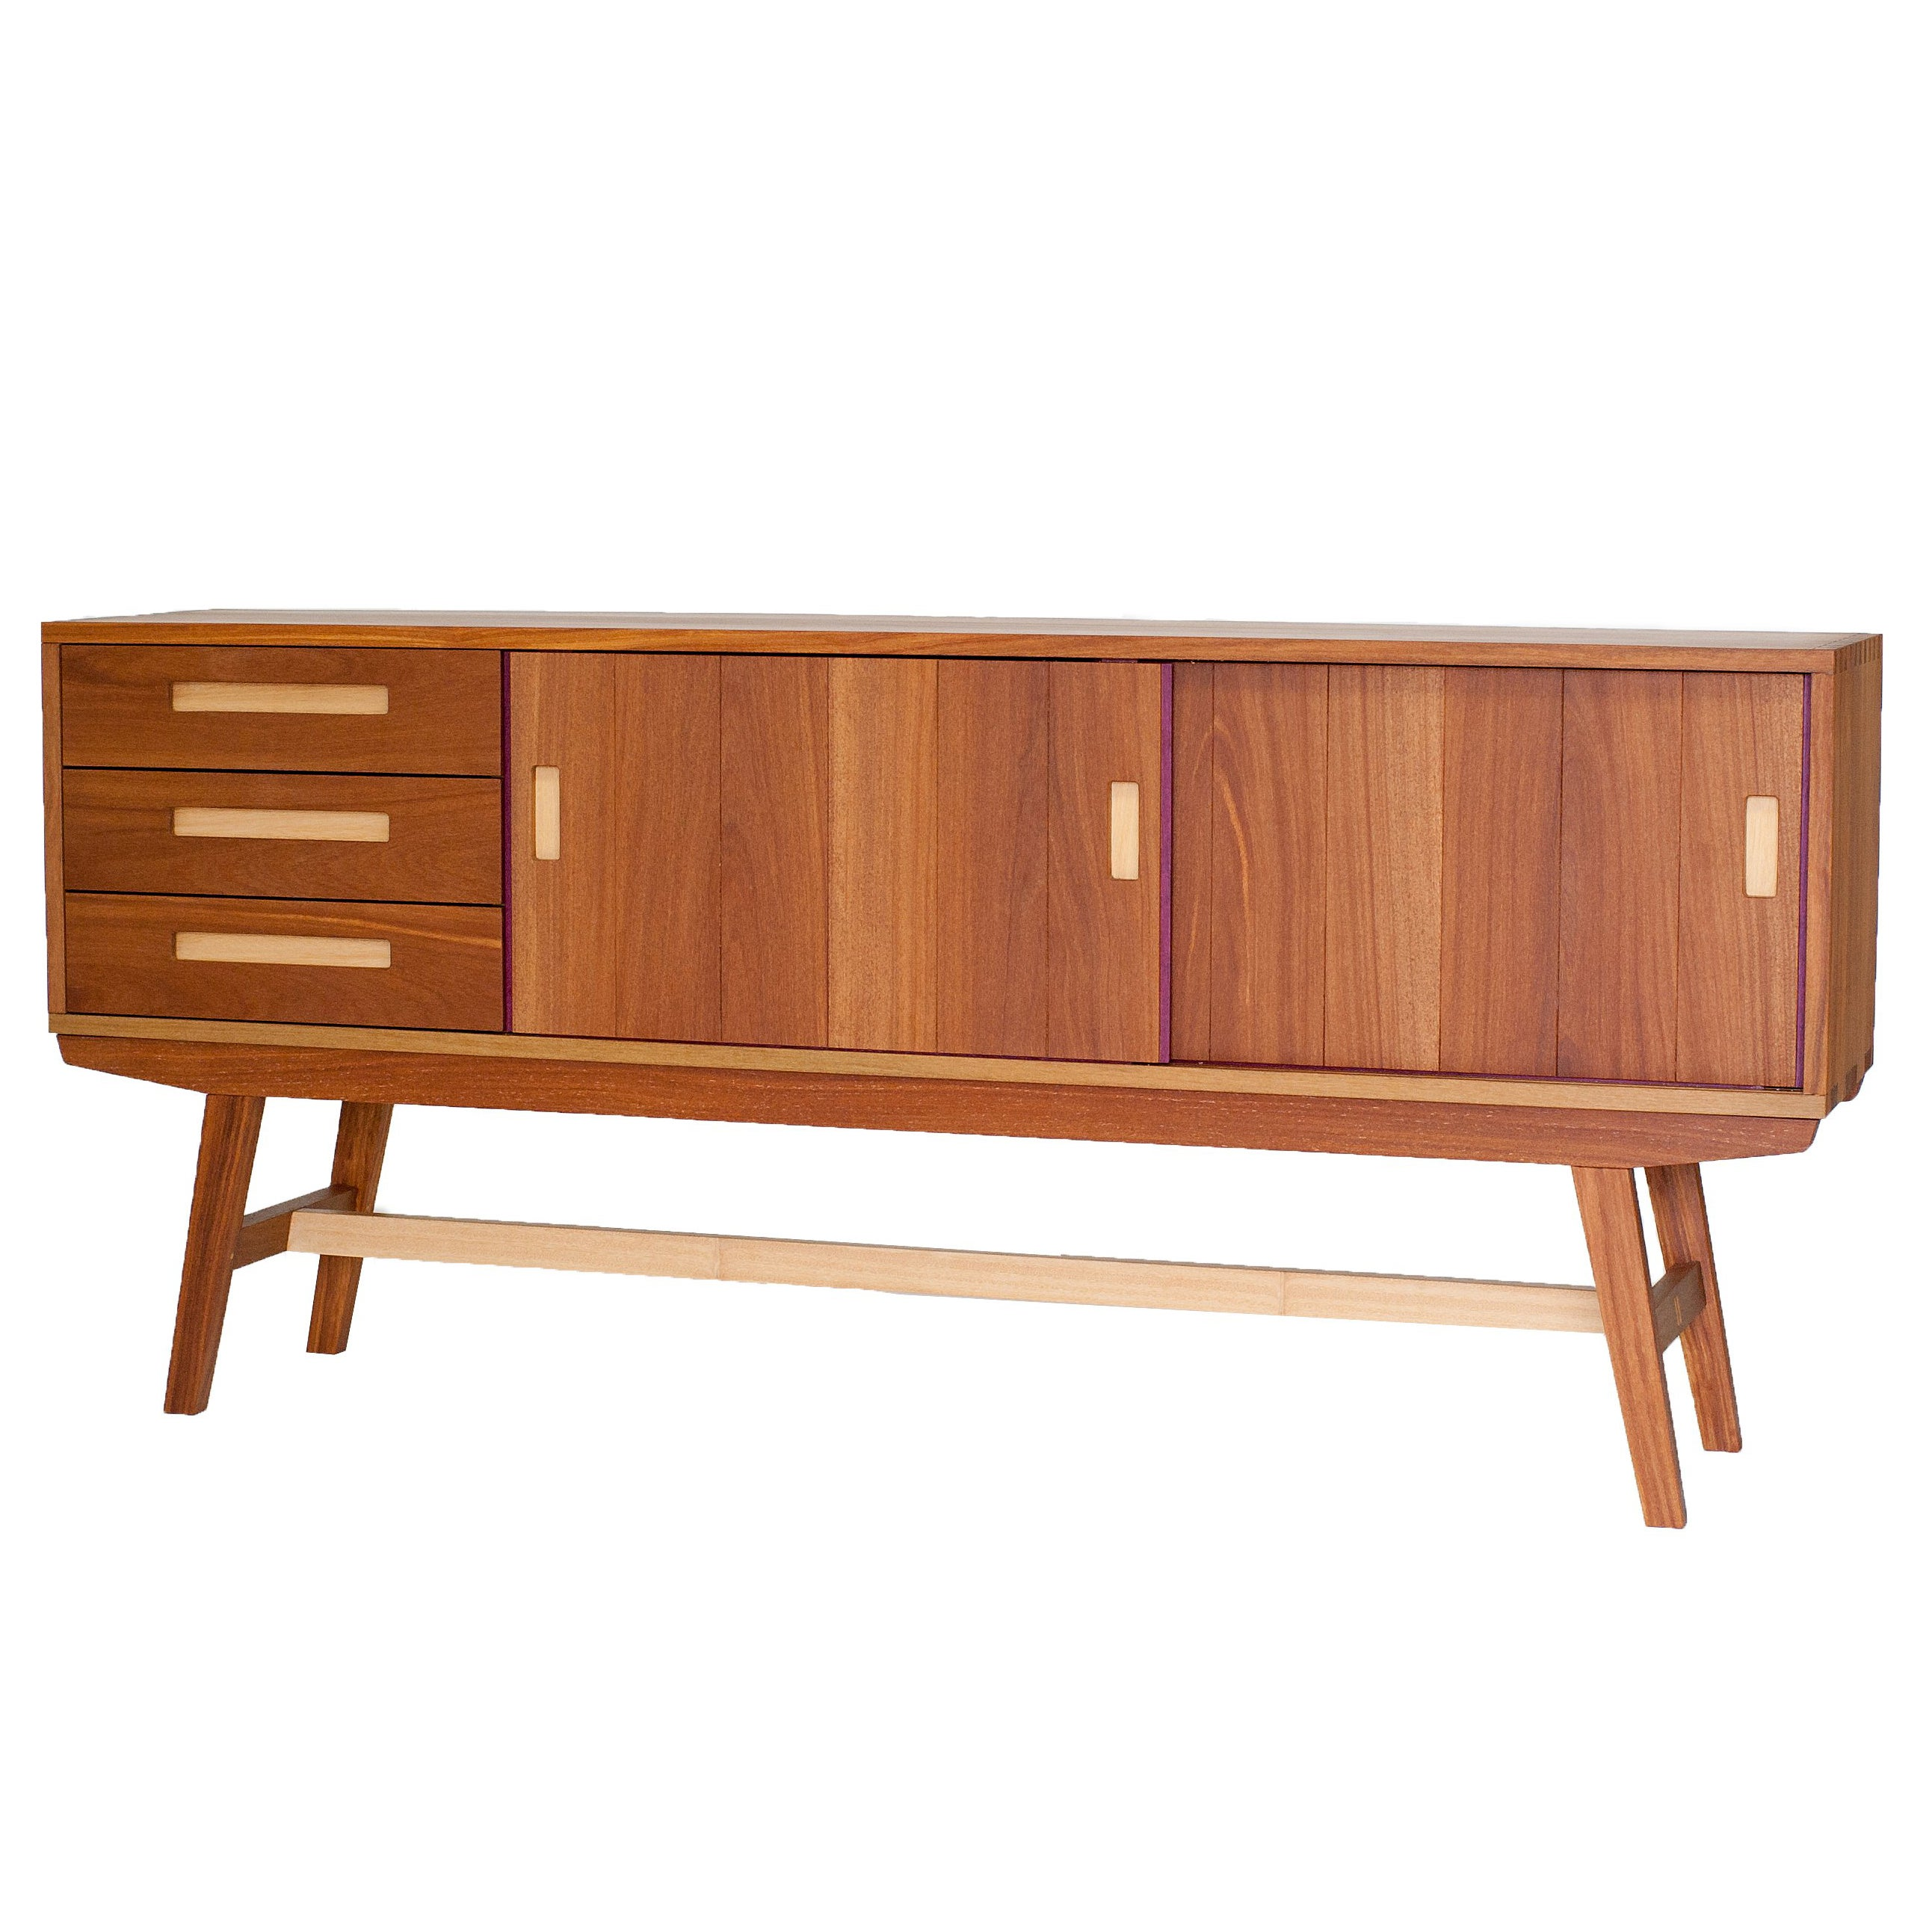 Italian Modern Walnut Sideboard Or Buffet Or Credenza In The